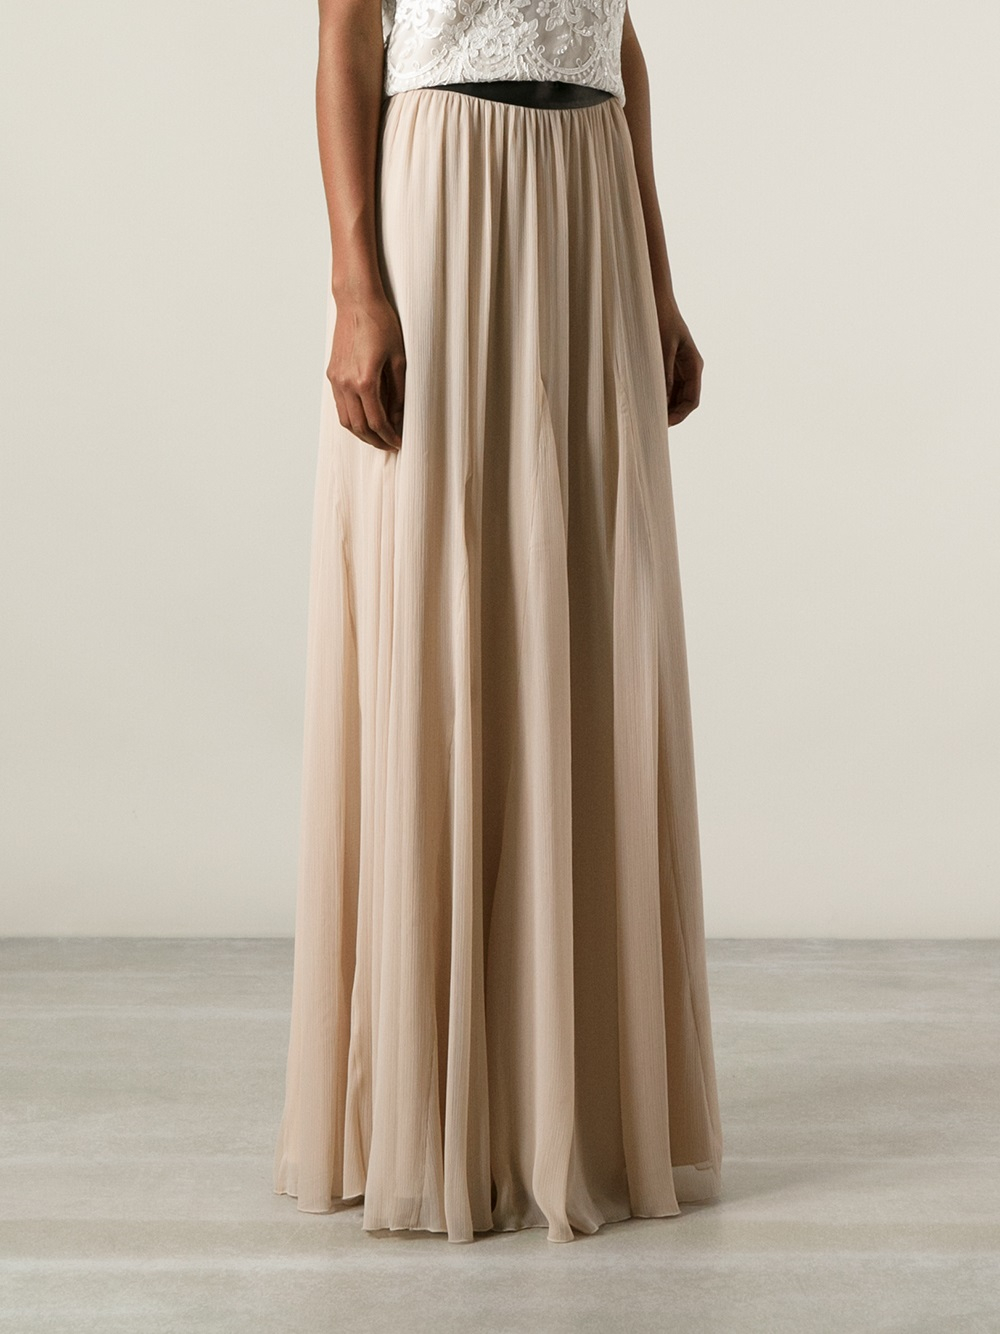 alice olivia maxi skirt in natural lyst